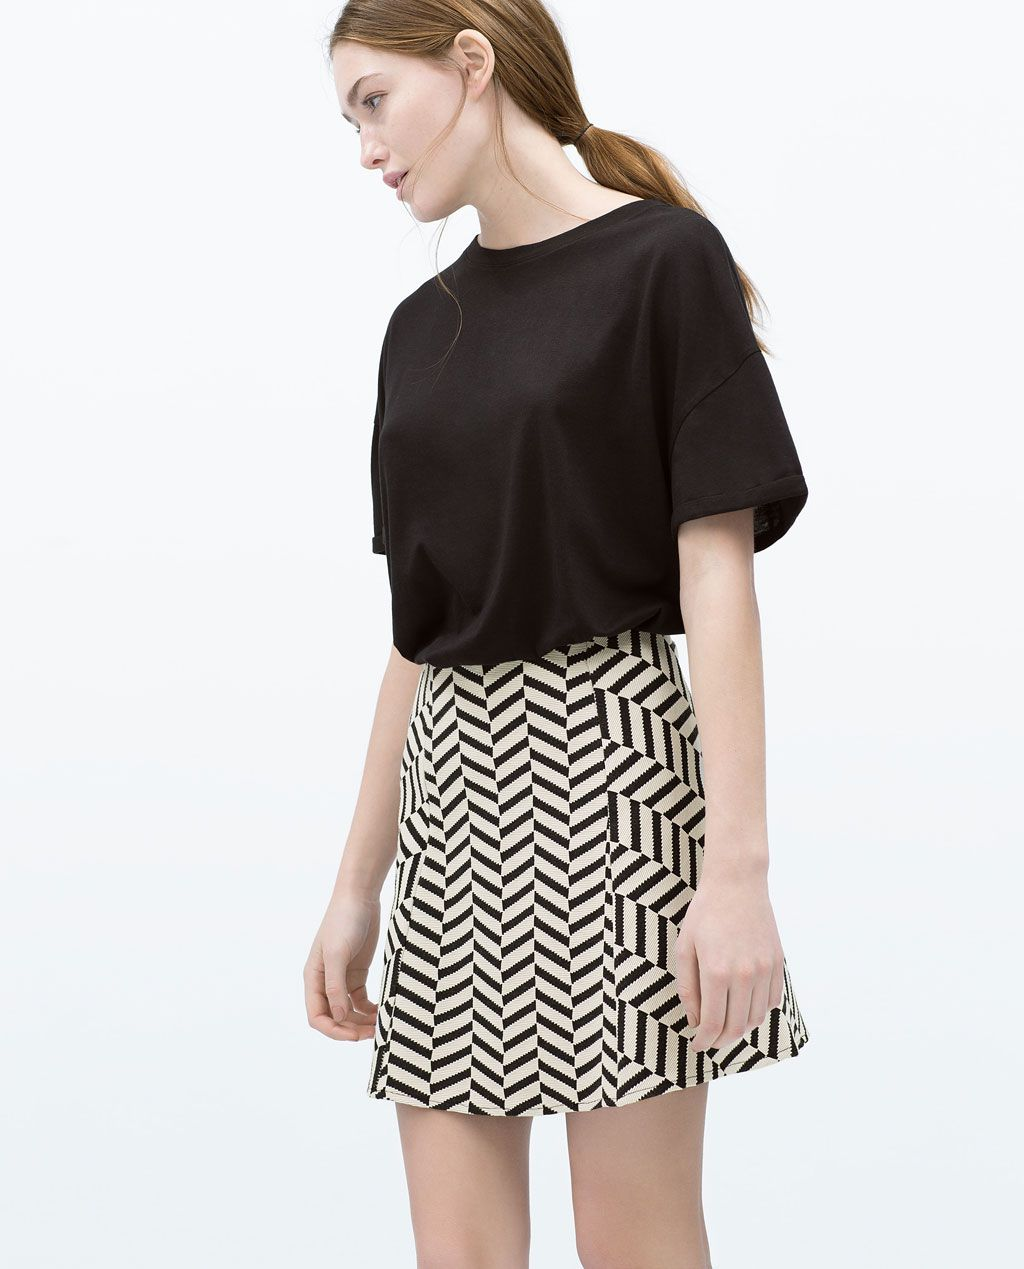 732996c93fd3 Image 1 of JACQUARD MINI SKIRT from Zara | Wears | Pinterest | Mini ...